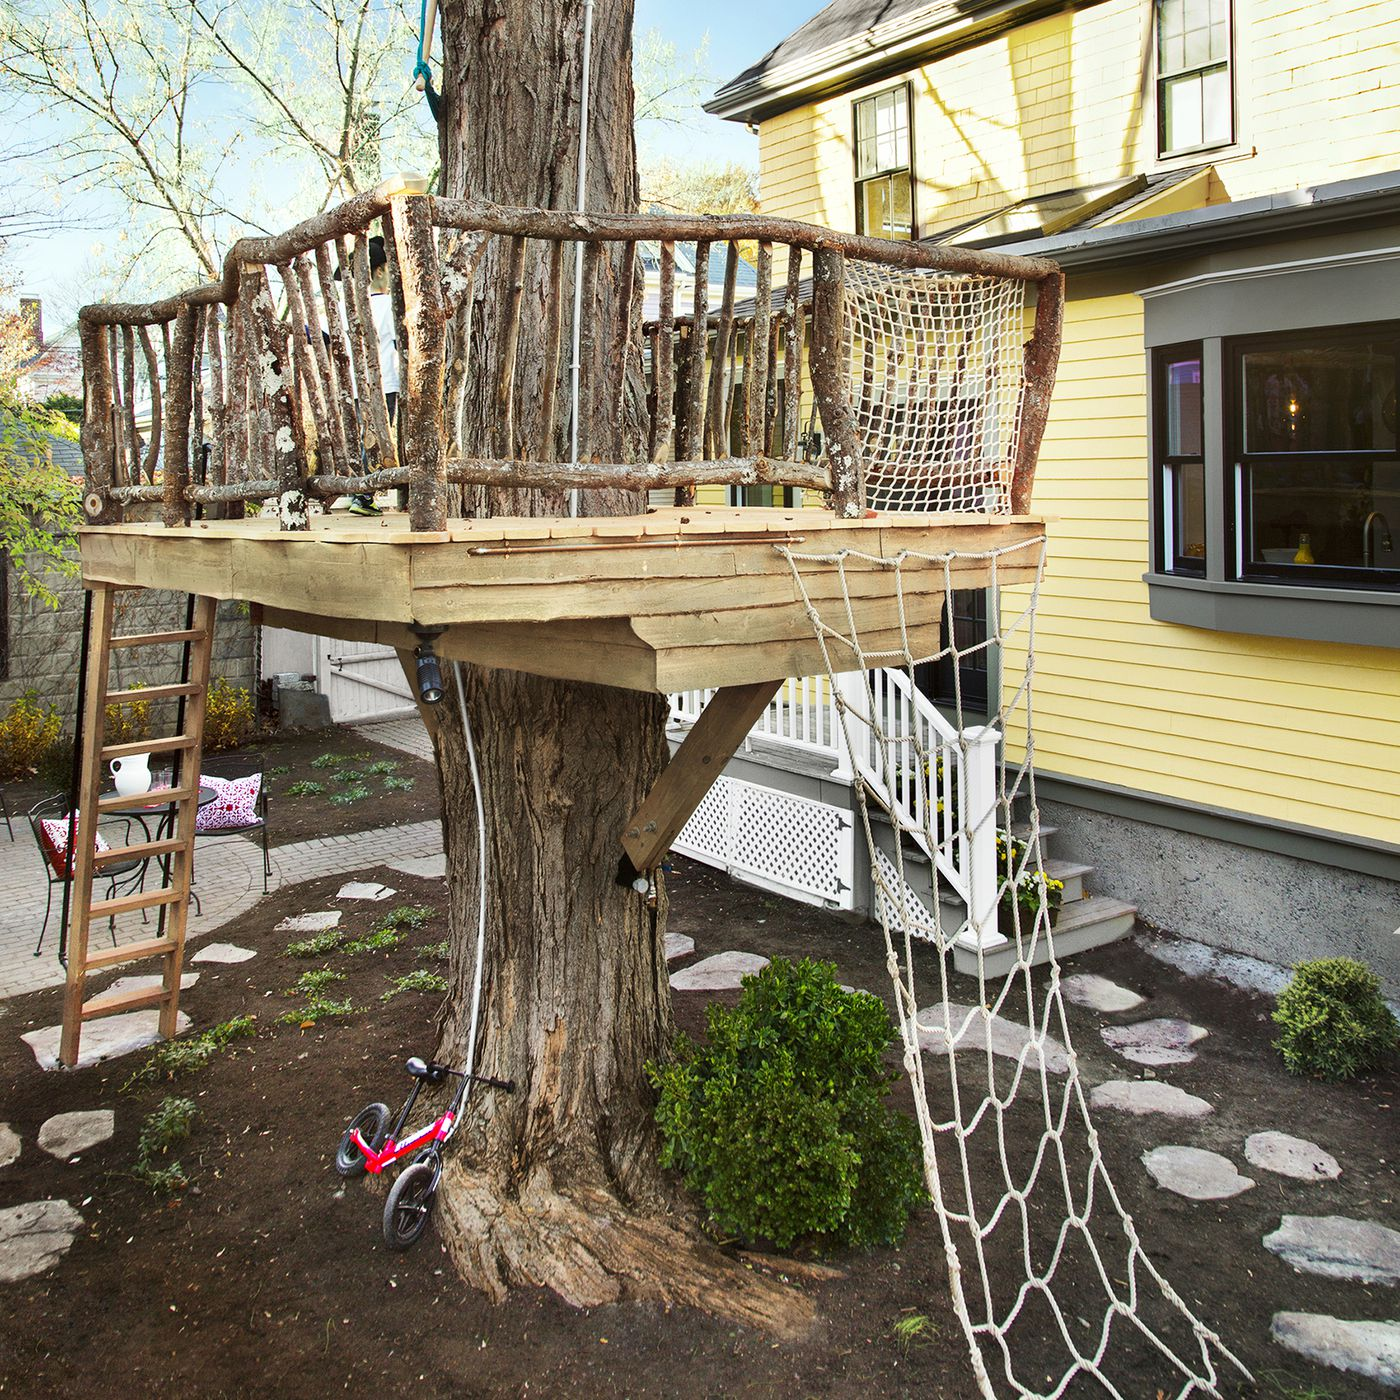 How To Build A Tree Fort Video Instructions This Old House